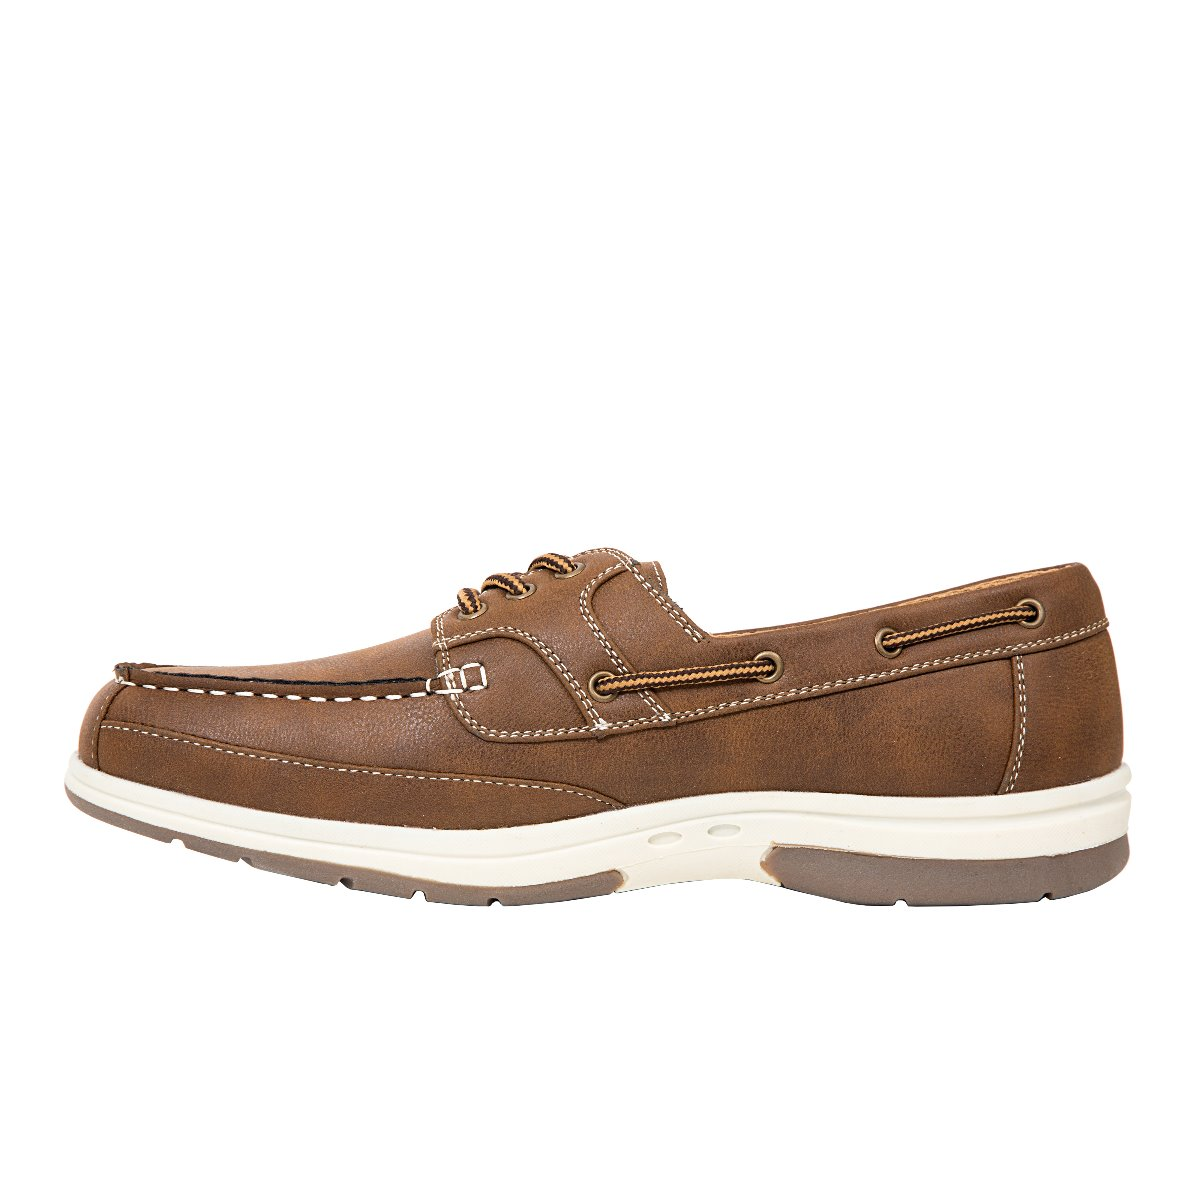 Tan Oxford Dress Shoes